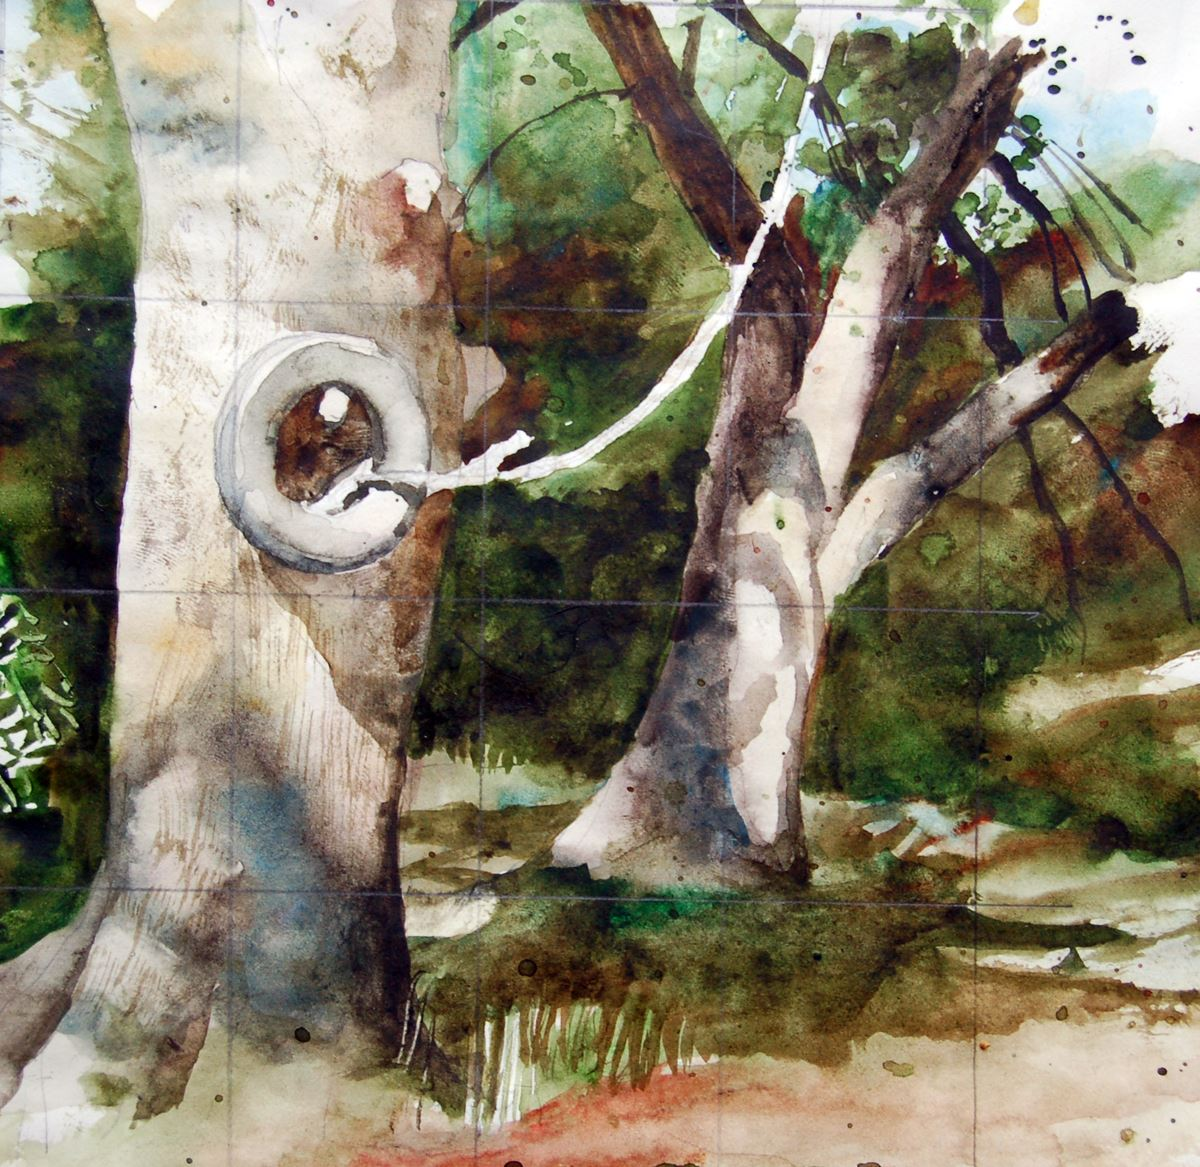 Watercolor art society houston tx - Monday Wednesday Evenings